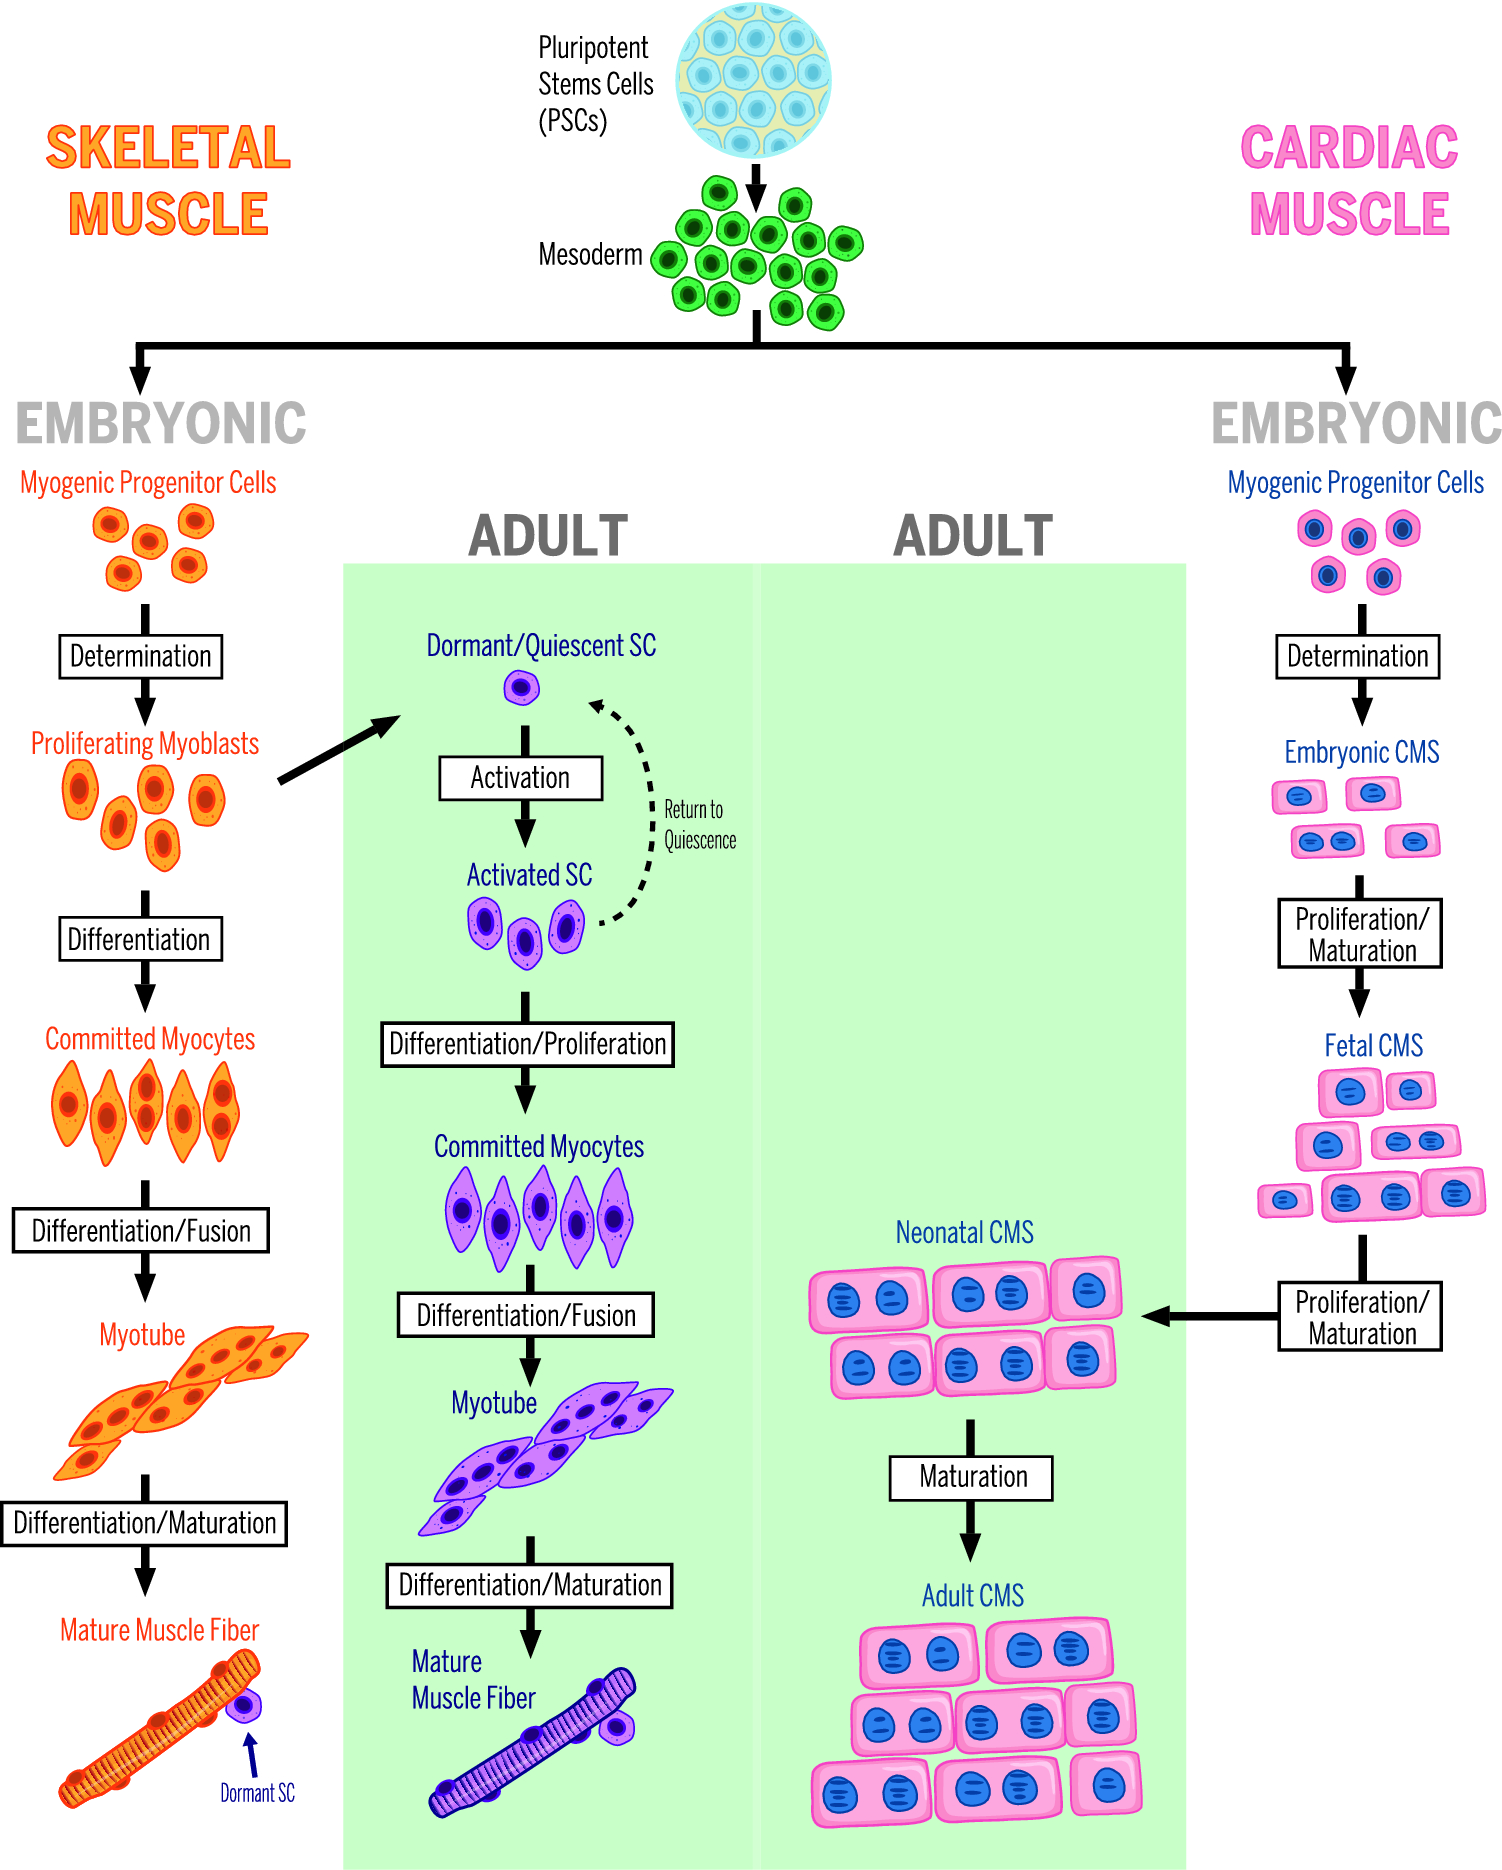 Cardiomyocyte nuclearity and ploidy: when is double trouble